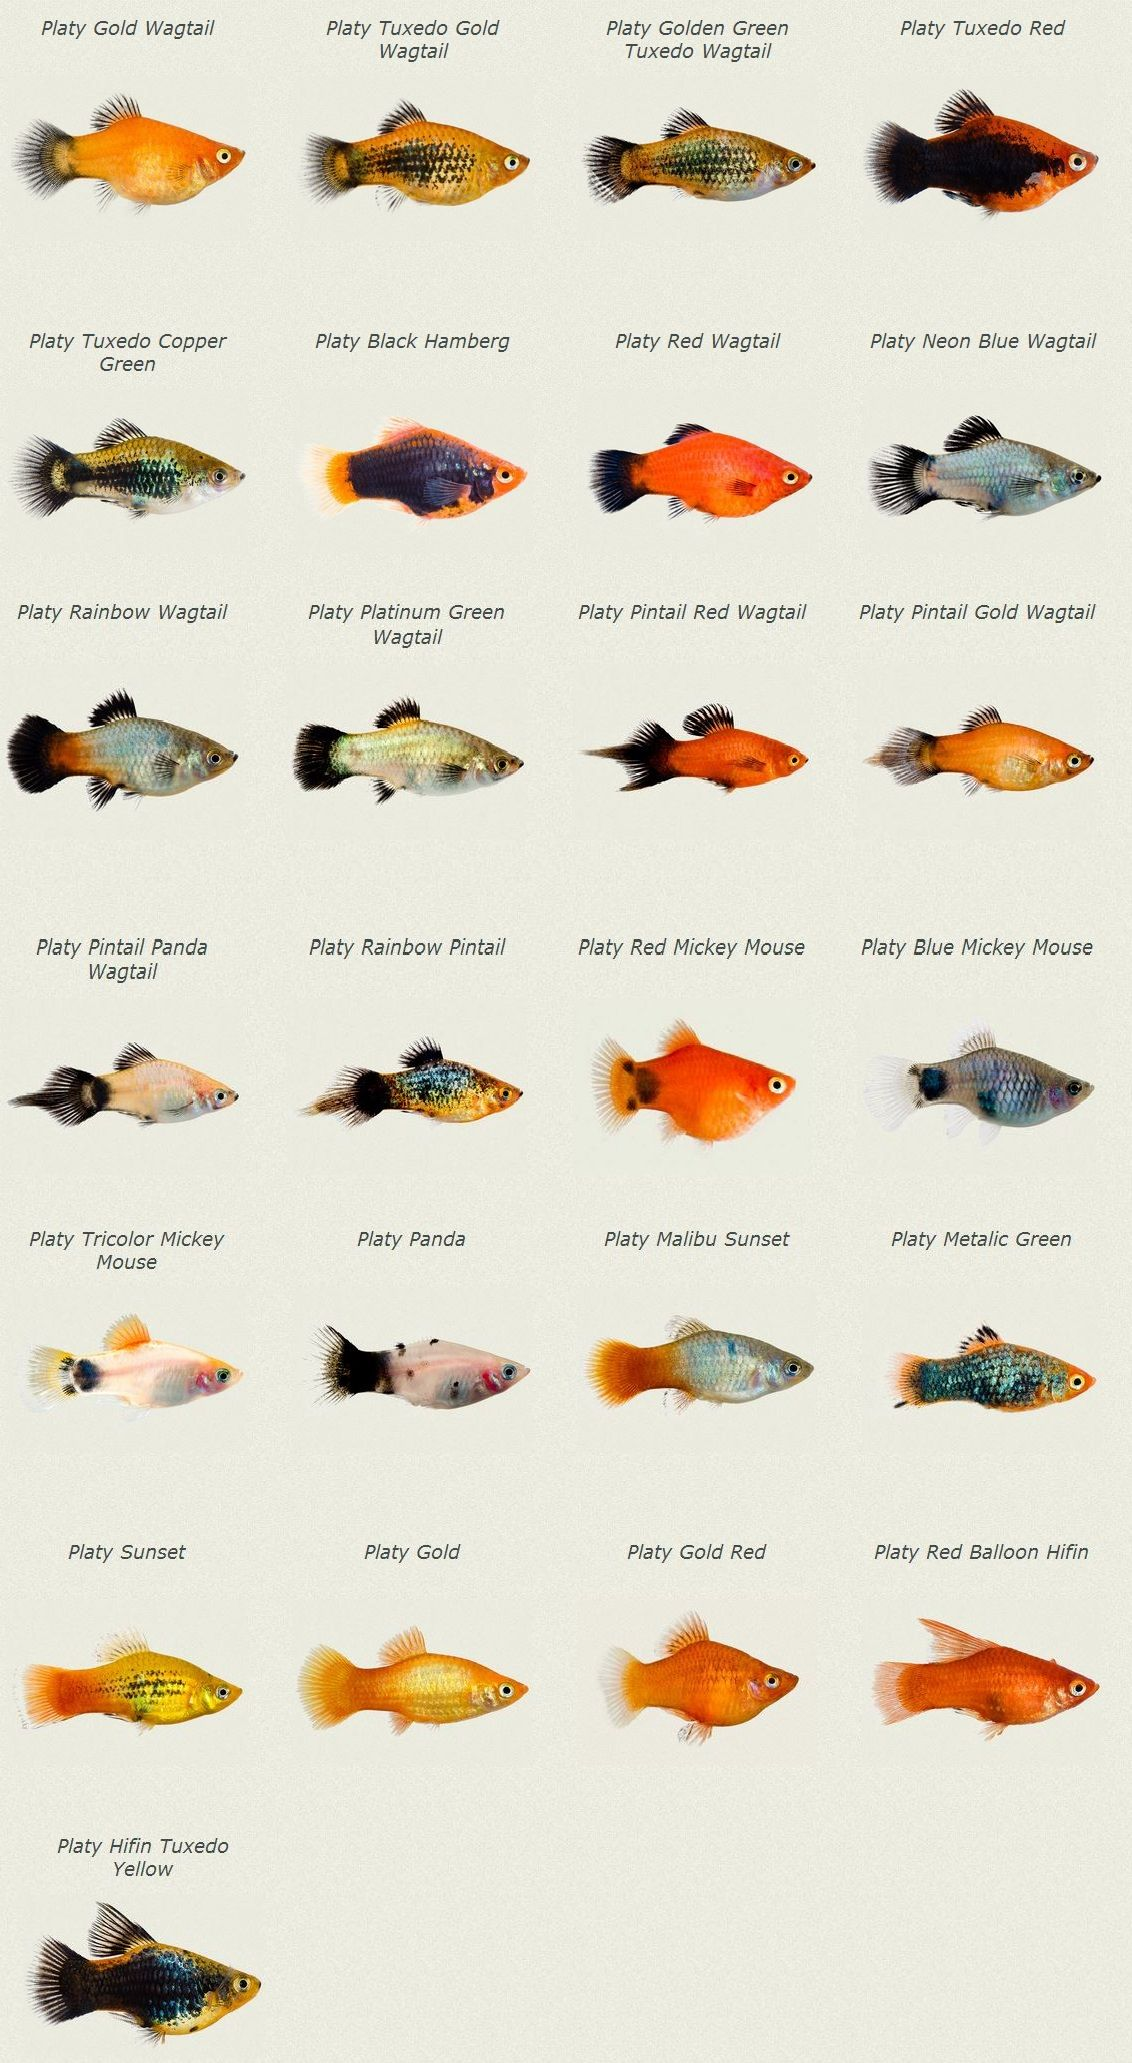 Tropical Fish Species List And Pictures